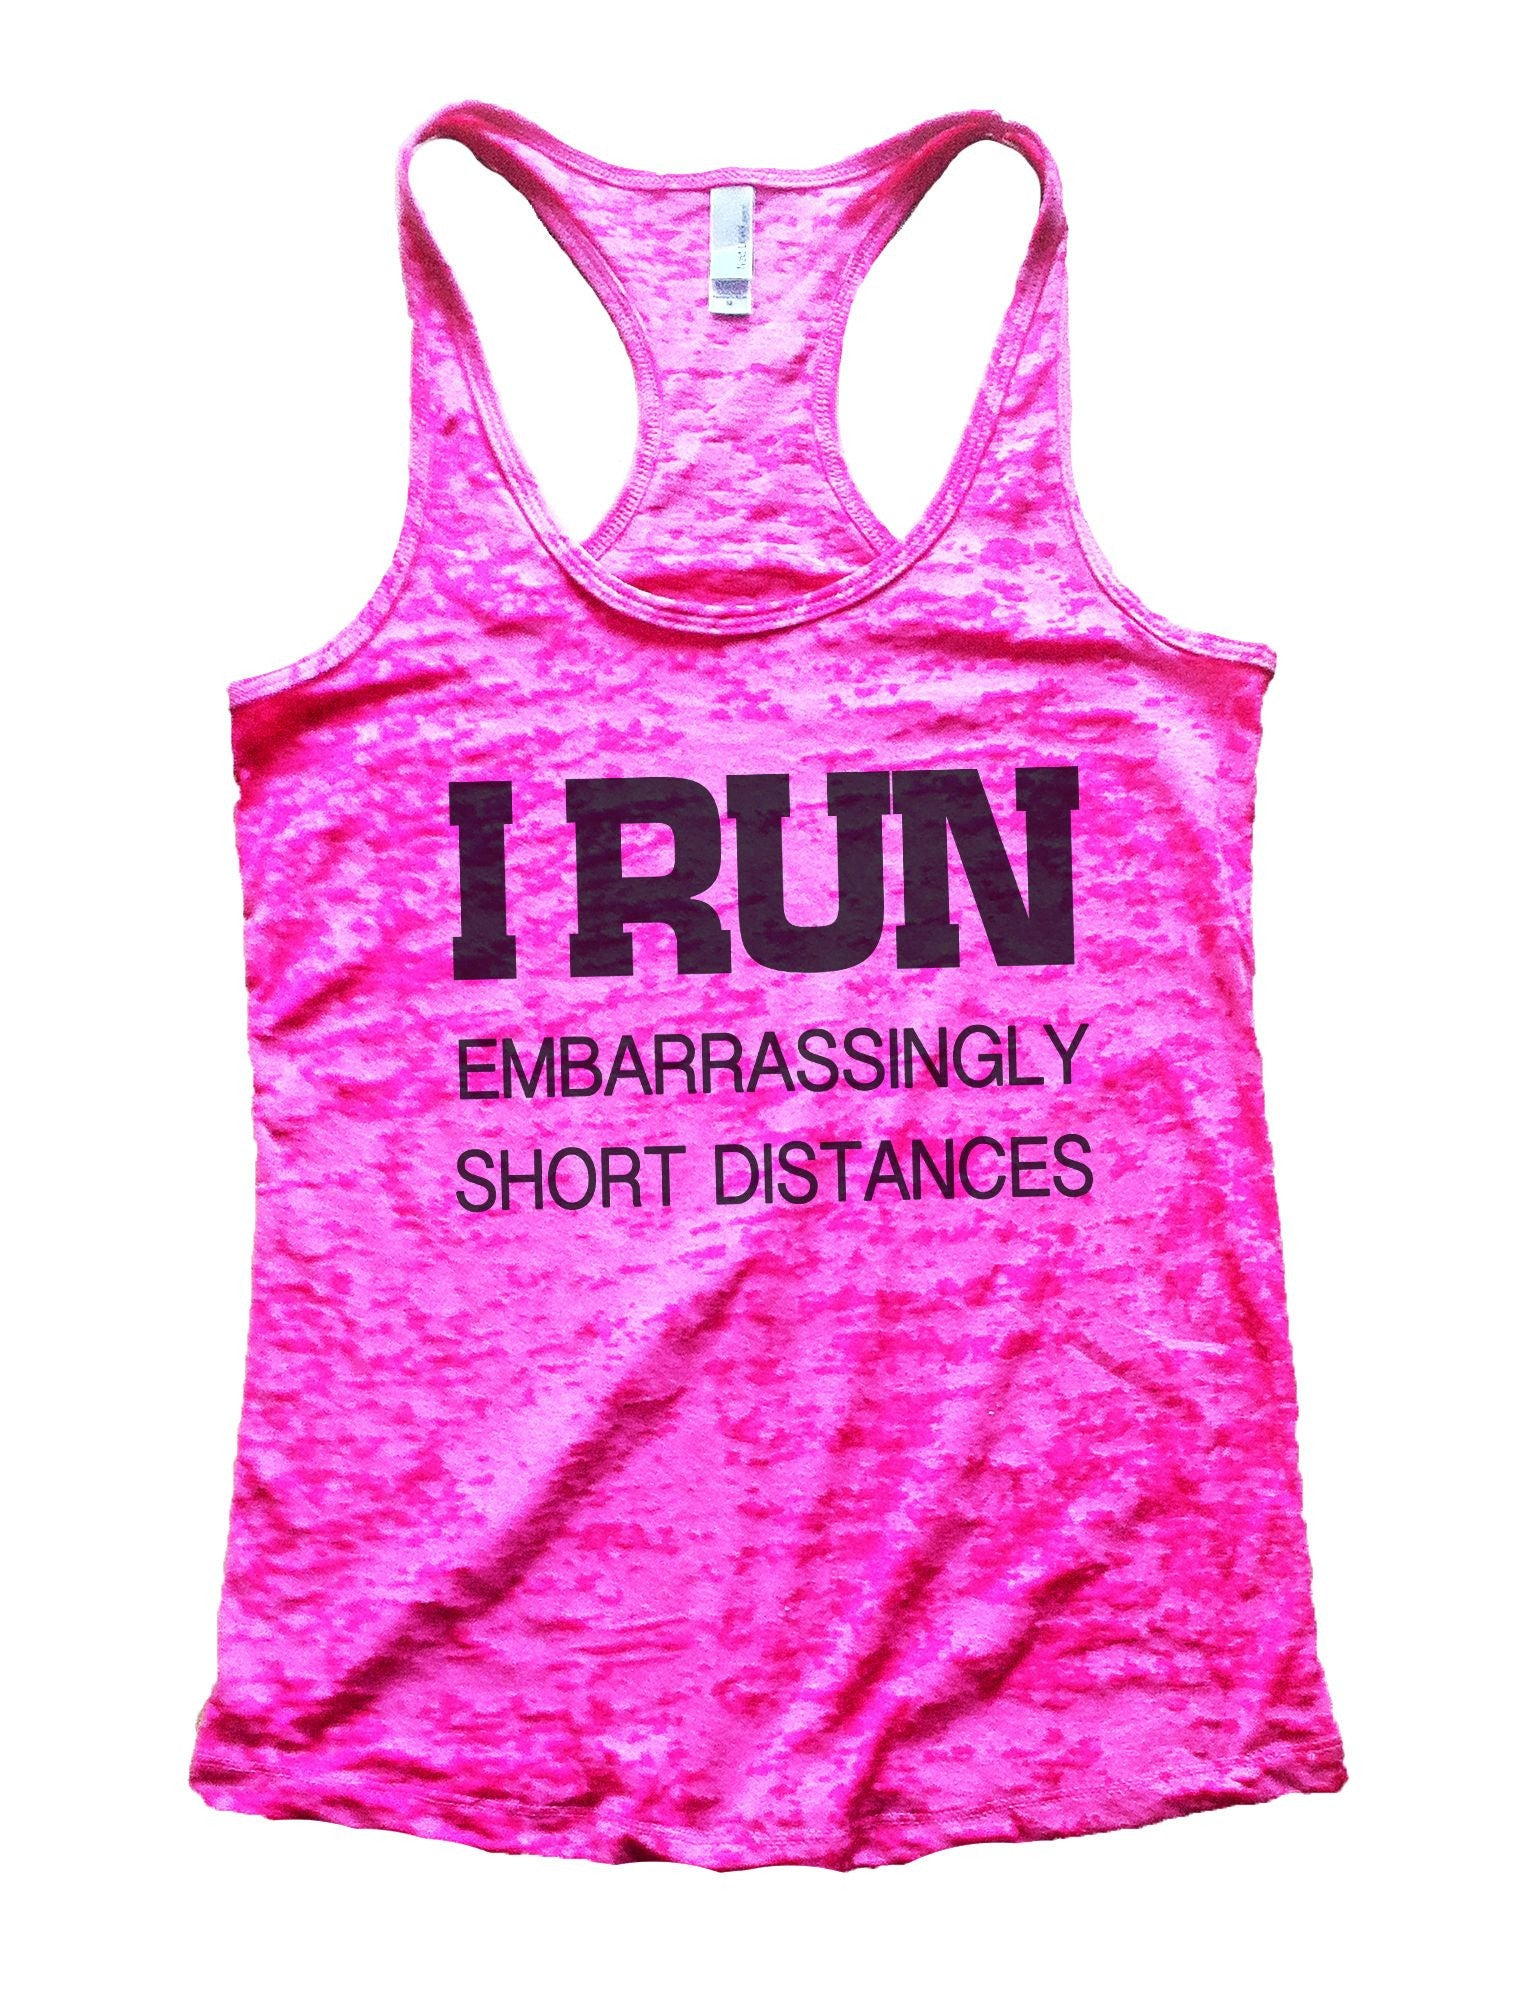 I Run Embarrassingly Short Distances Burnout Tank Top By BurnoutTankTops.com - 733 - Funny Shirts Tank Tops Burnouts and Triblends  - 3